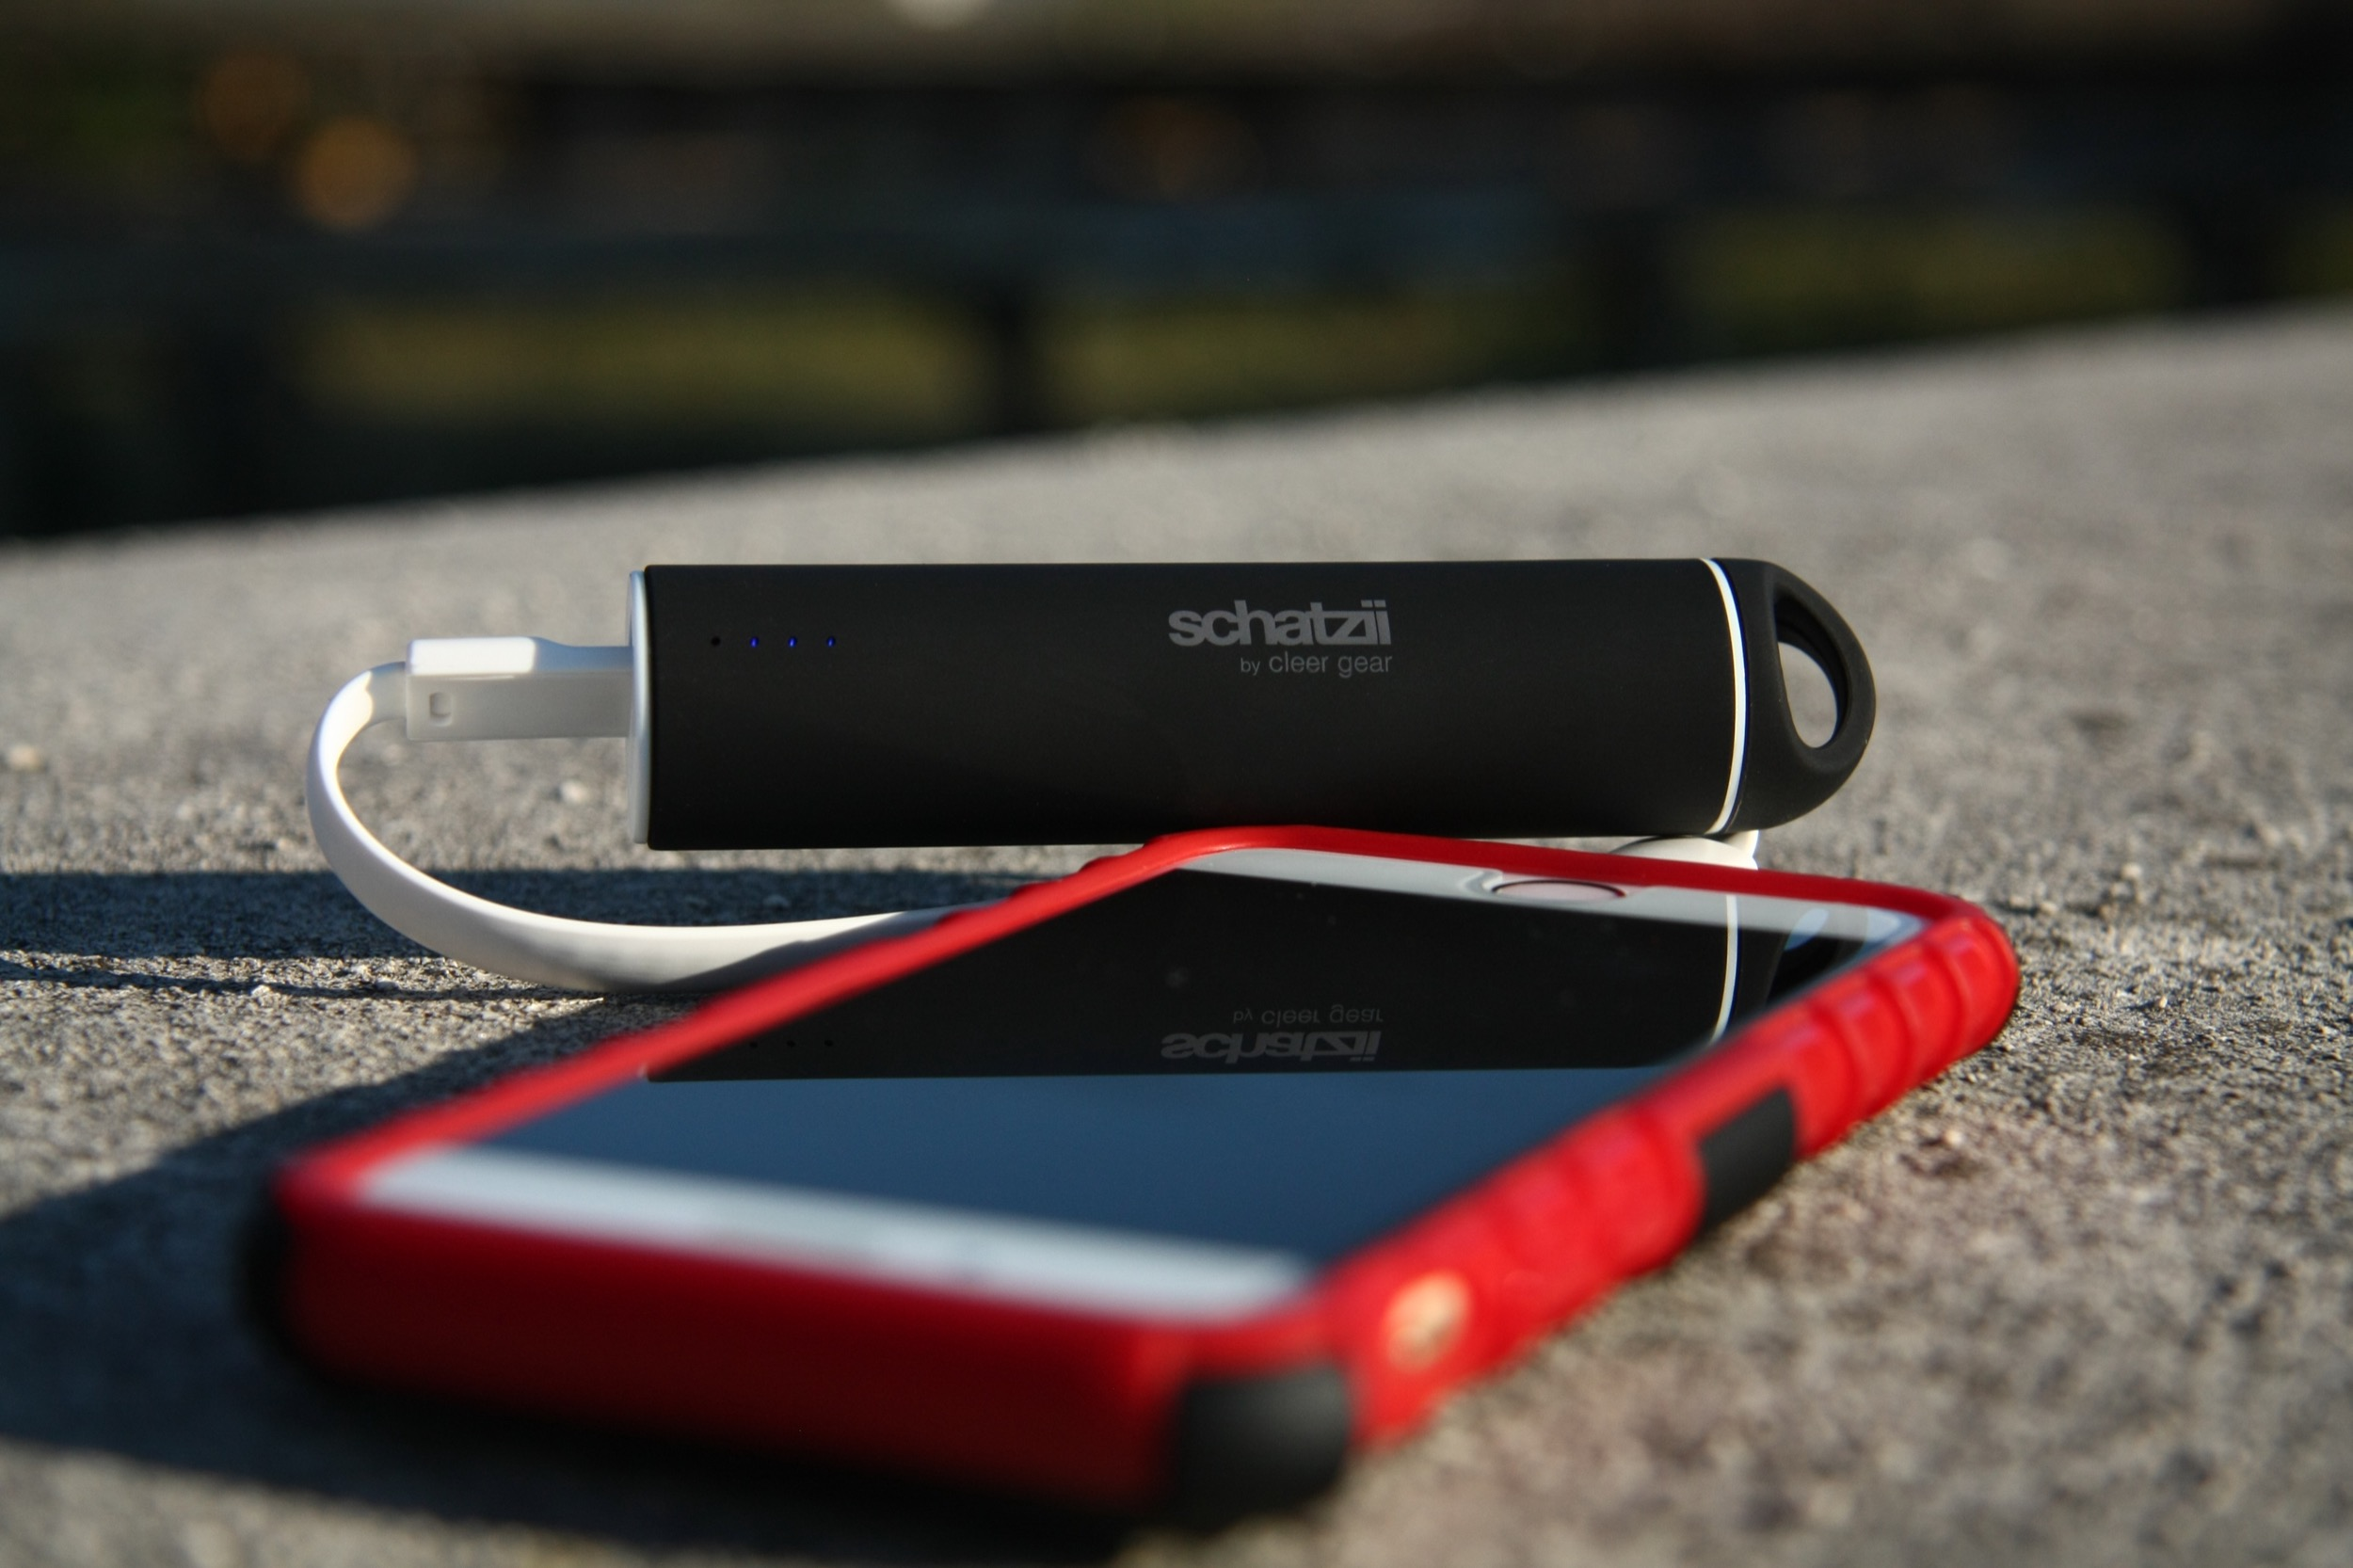 PowerStick Rechargeable Battery - High Capacity 2200 mAh